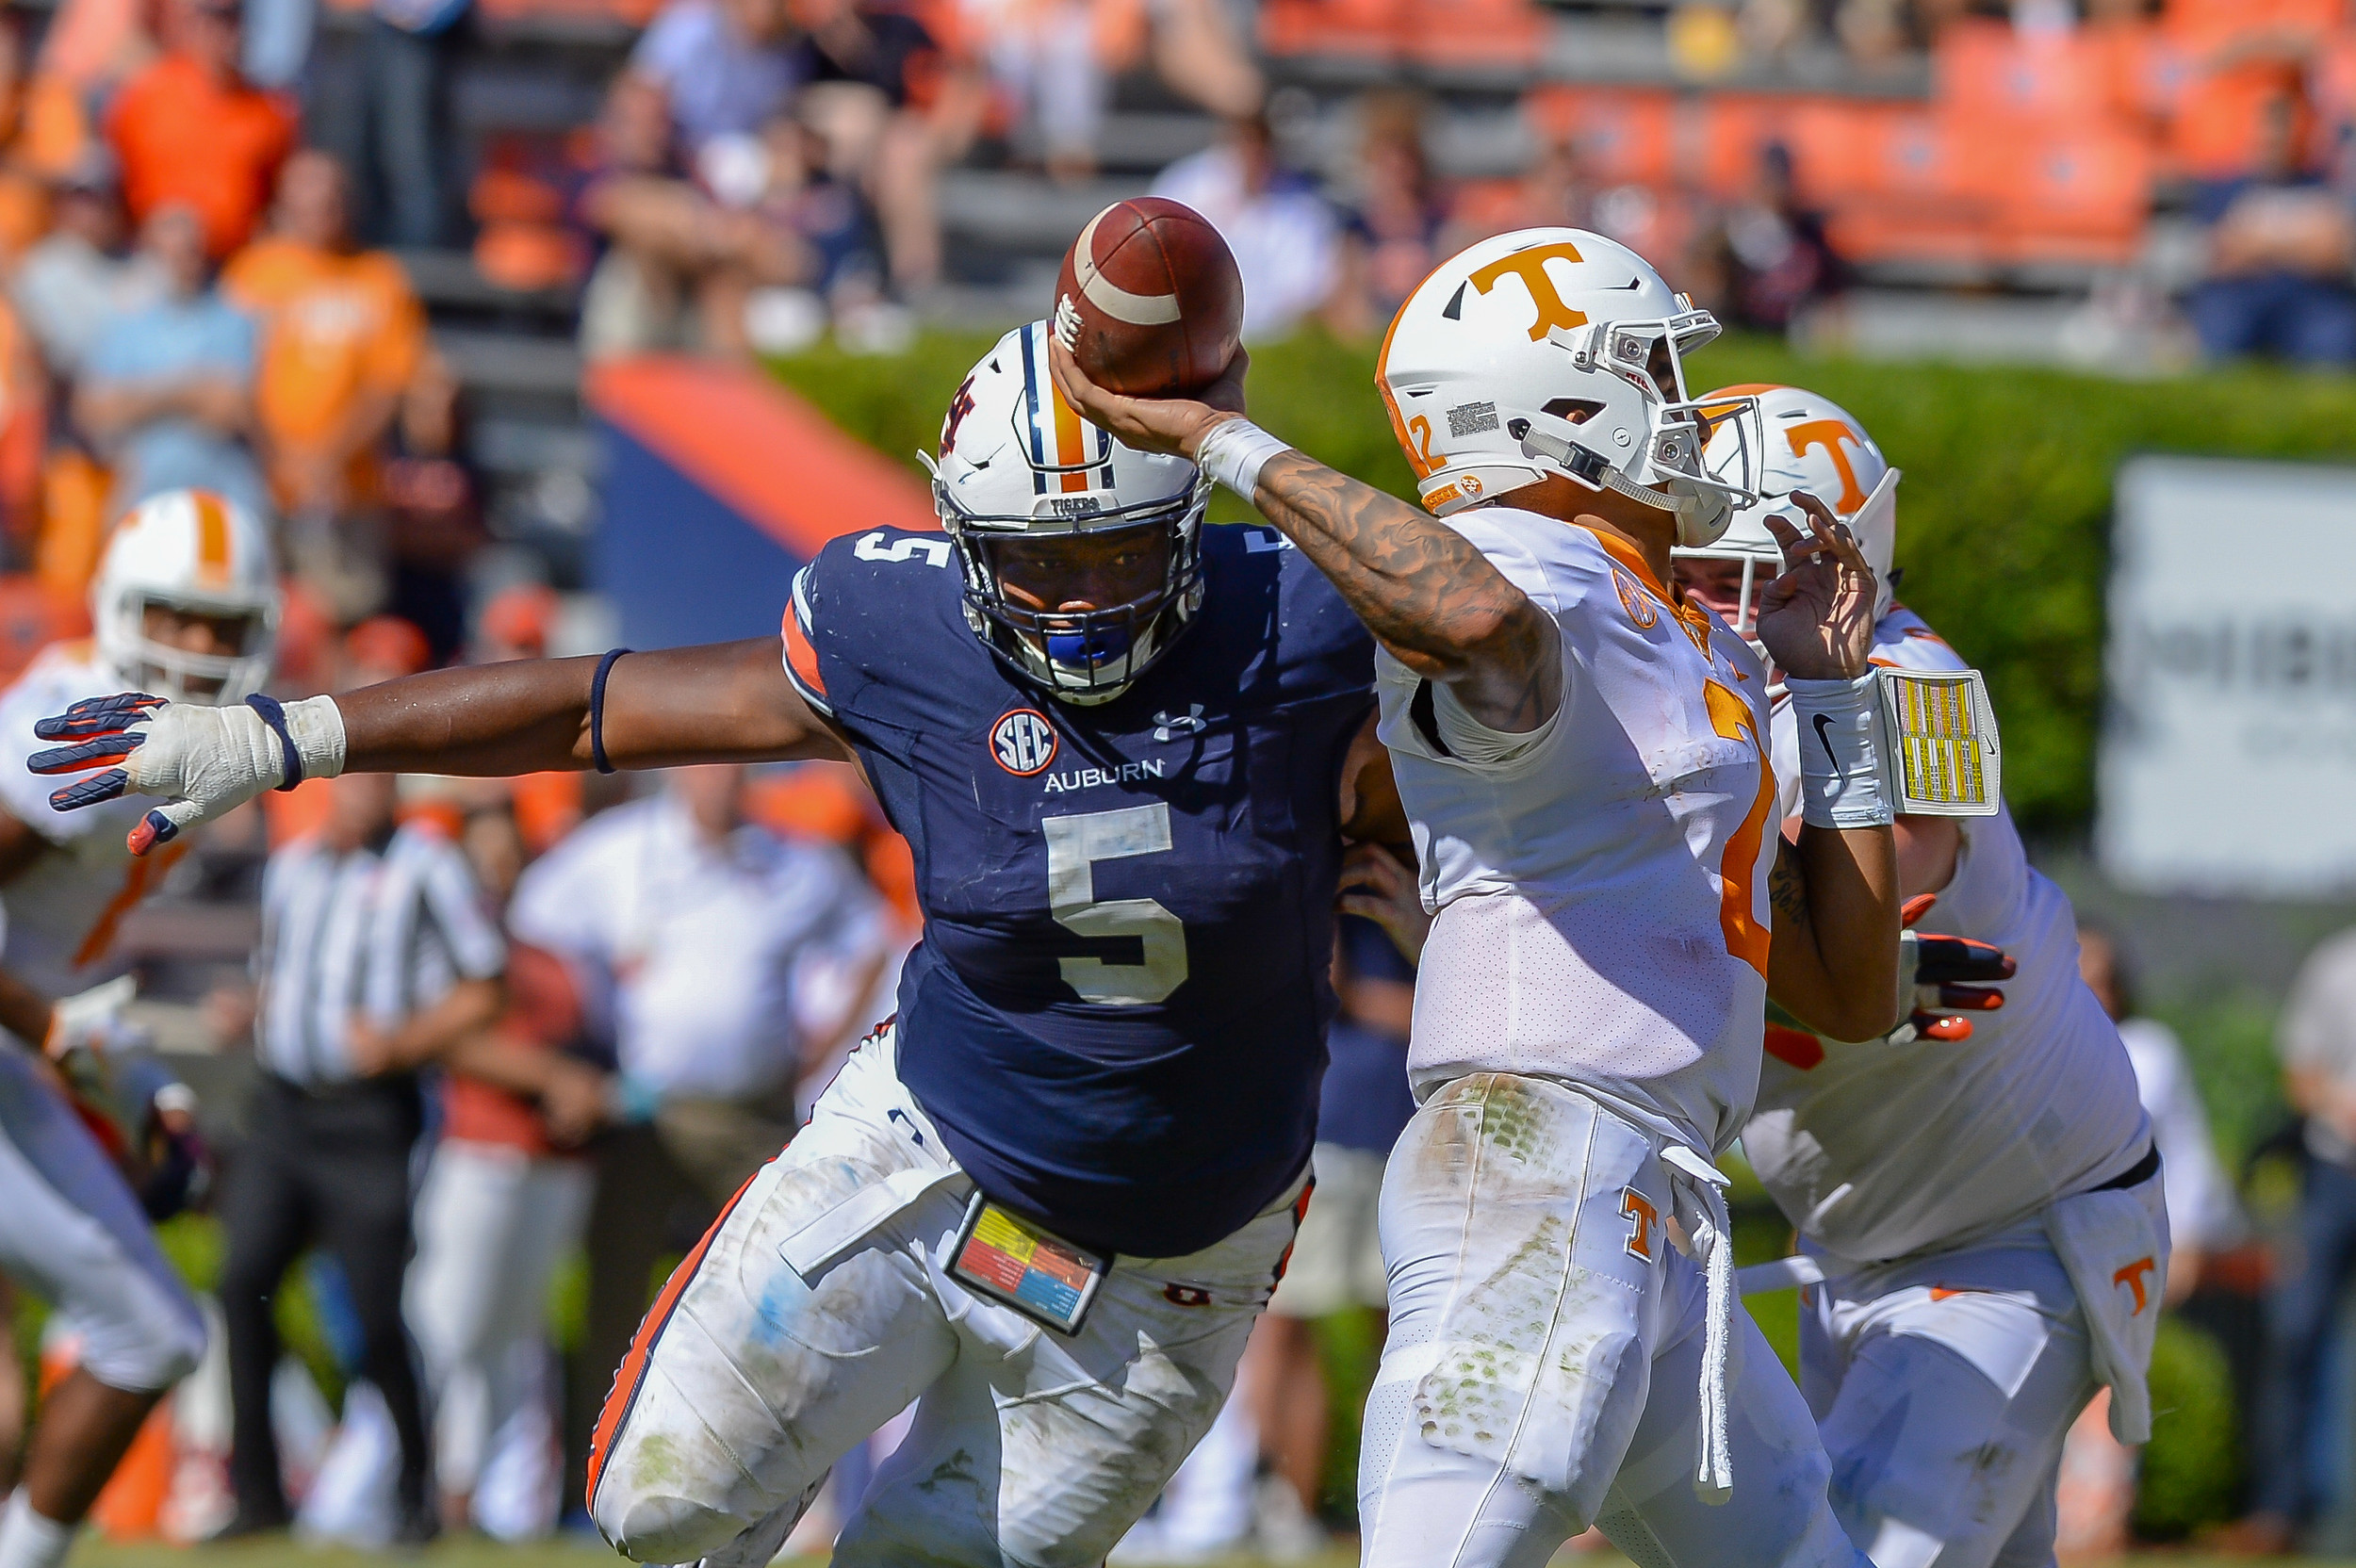 Auburn Tigers defensive lineman Derrick Brown (5) pressures Tennessee Volunteers quarterback Jarrett Guarantano (2) during the second half of Saturday's game, at Jordan-Hare Stadium in Auburn, AL. Daily Mountain Eagle -  Jeff Johnsey